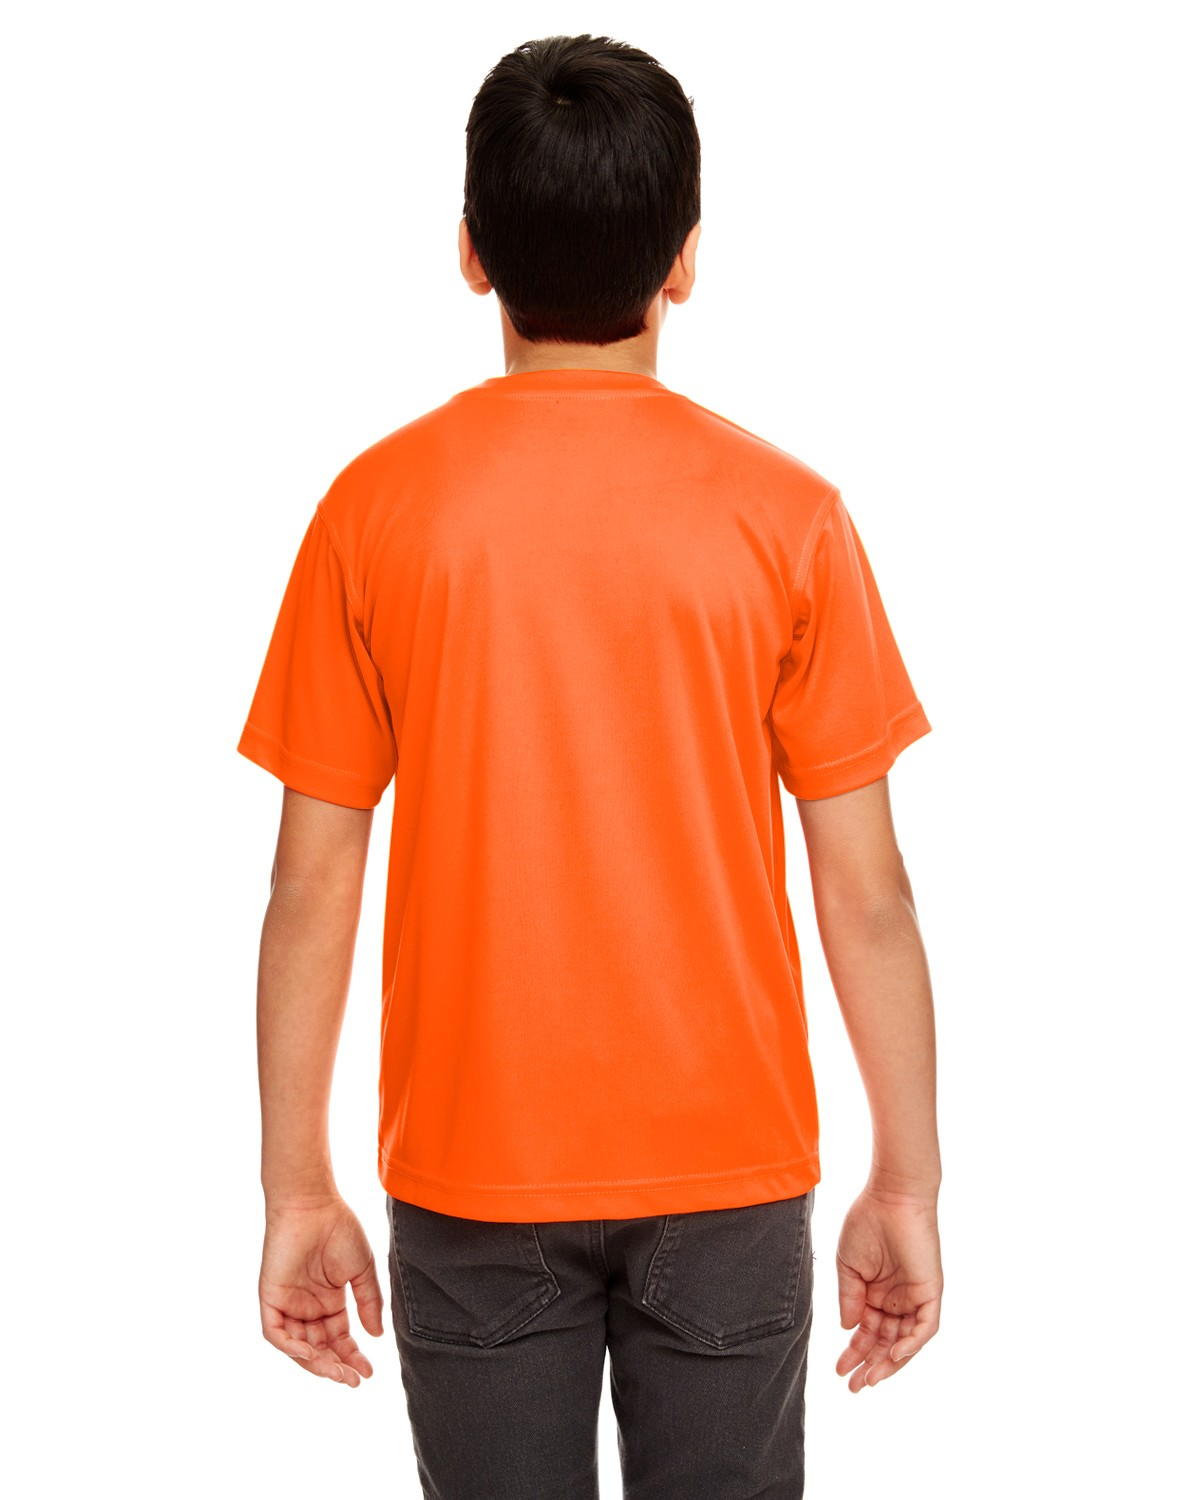 8420Y UltraClub BRIGHT ORANGE